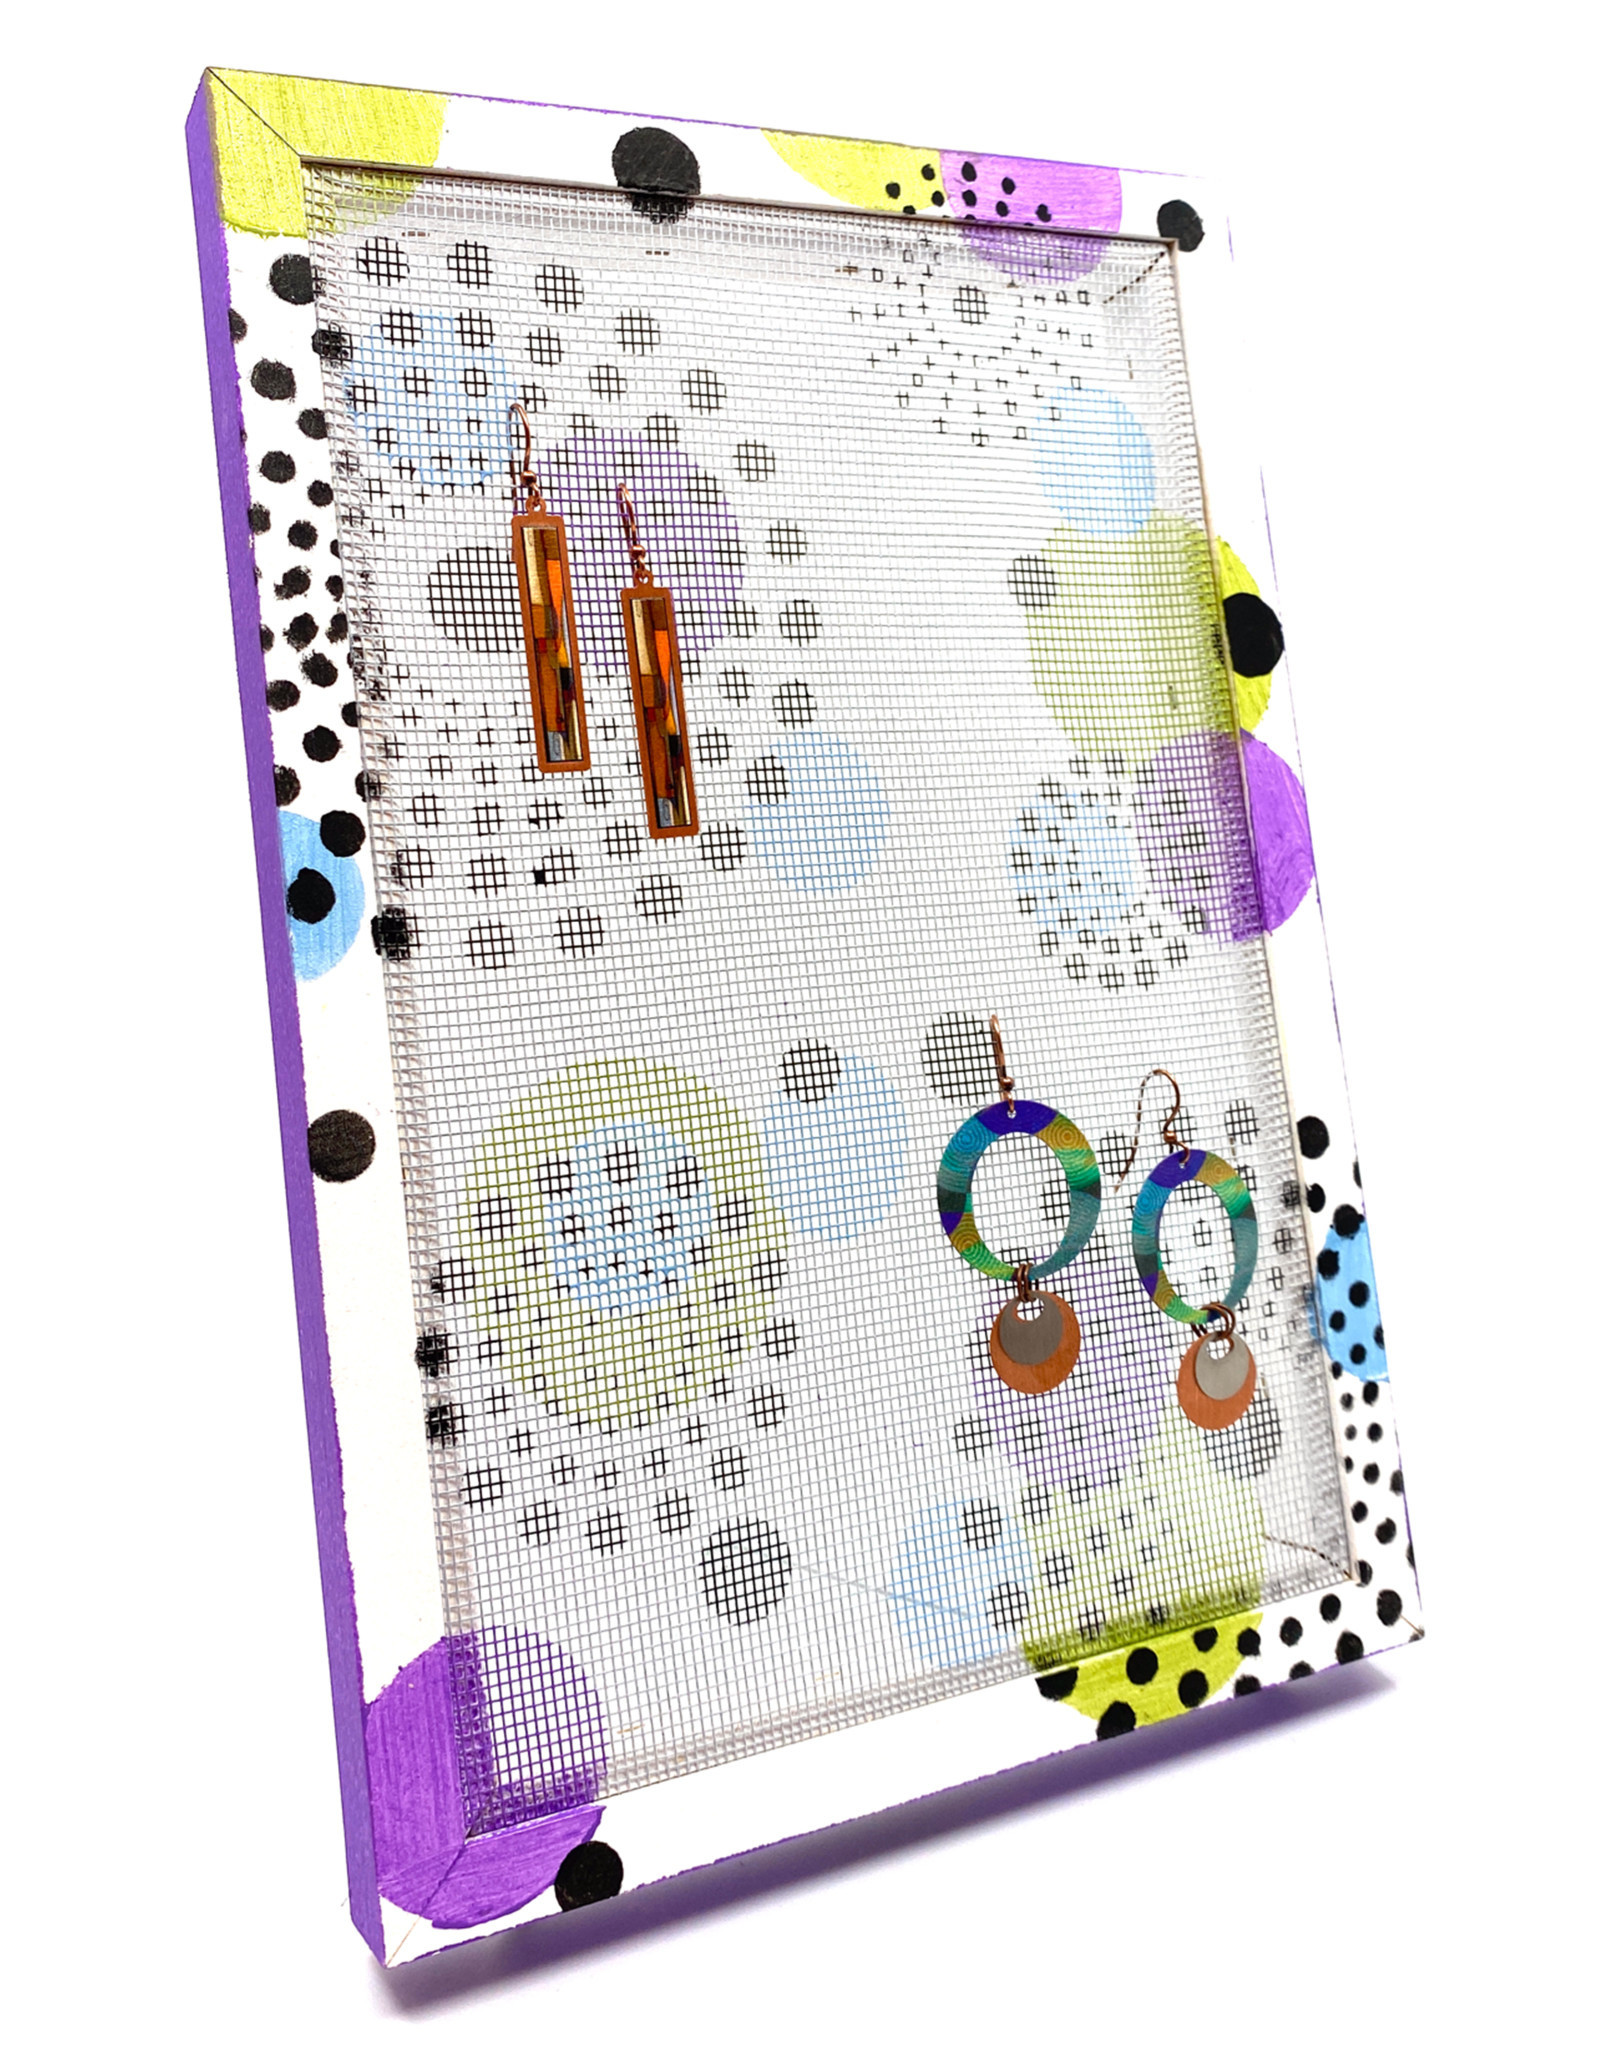 EARRING HOLDER GALLERY DIPPIN DOTS CLASSIC EARRING HOLDER